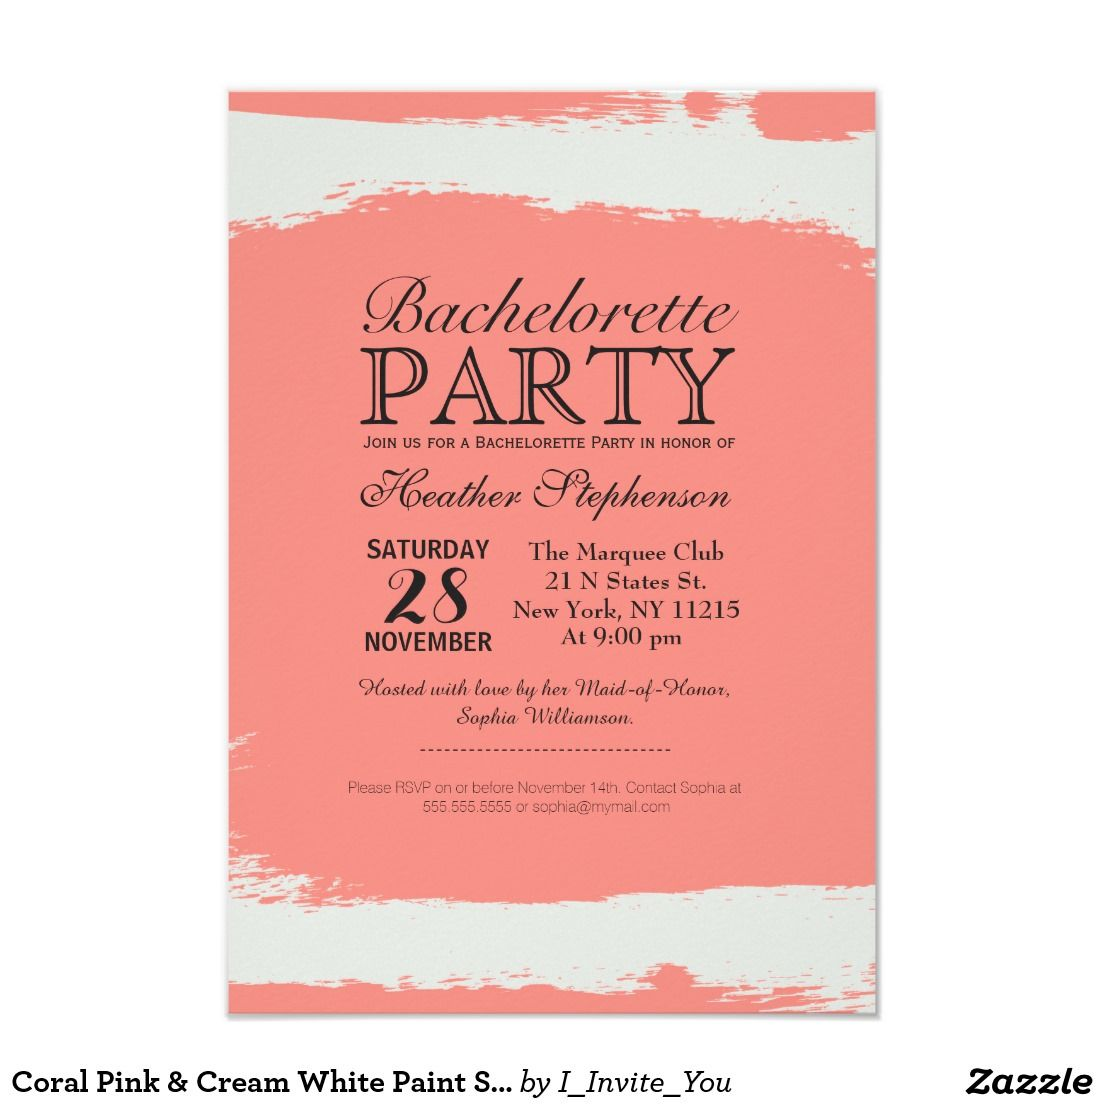 Coral Pink & Cream White Paint Strokes 3.5x5 Paper Invitation Card